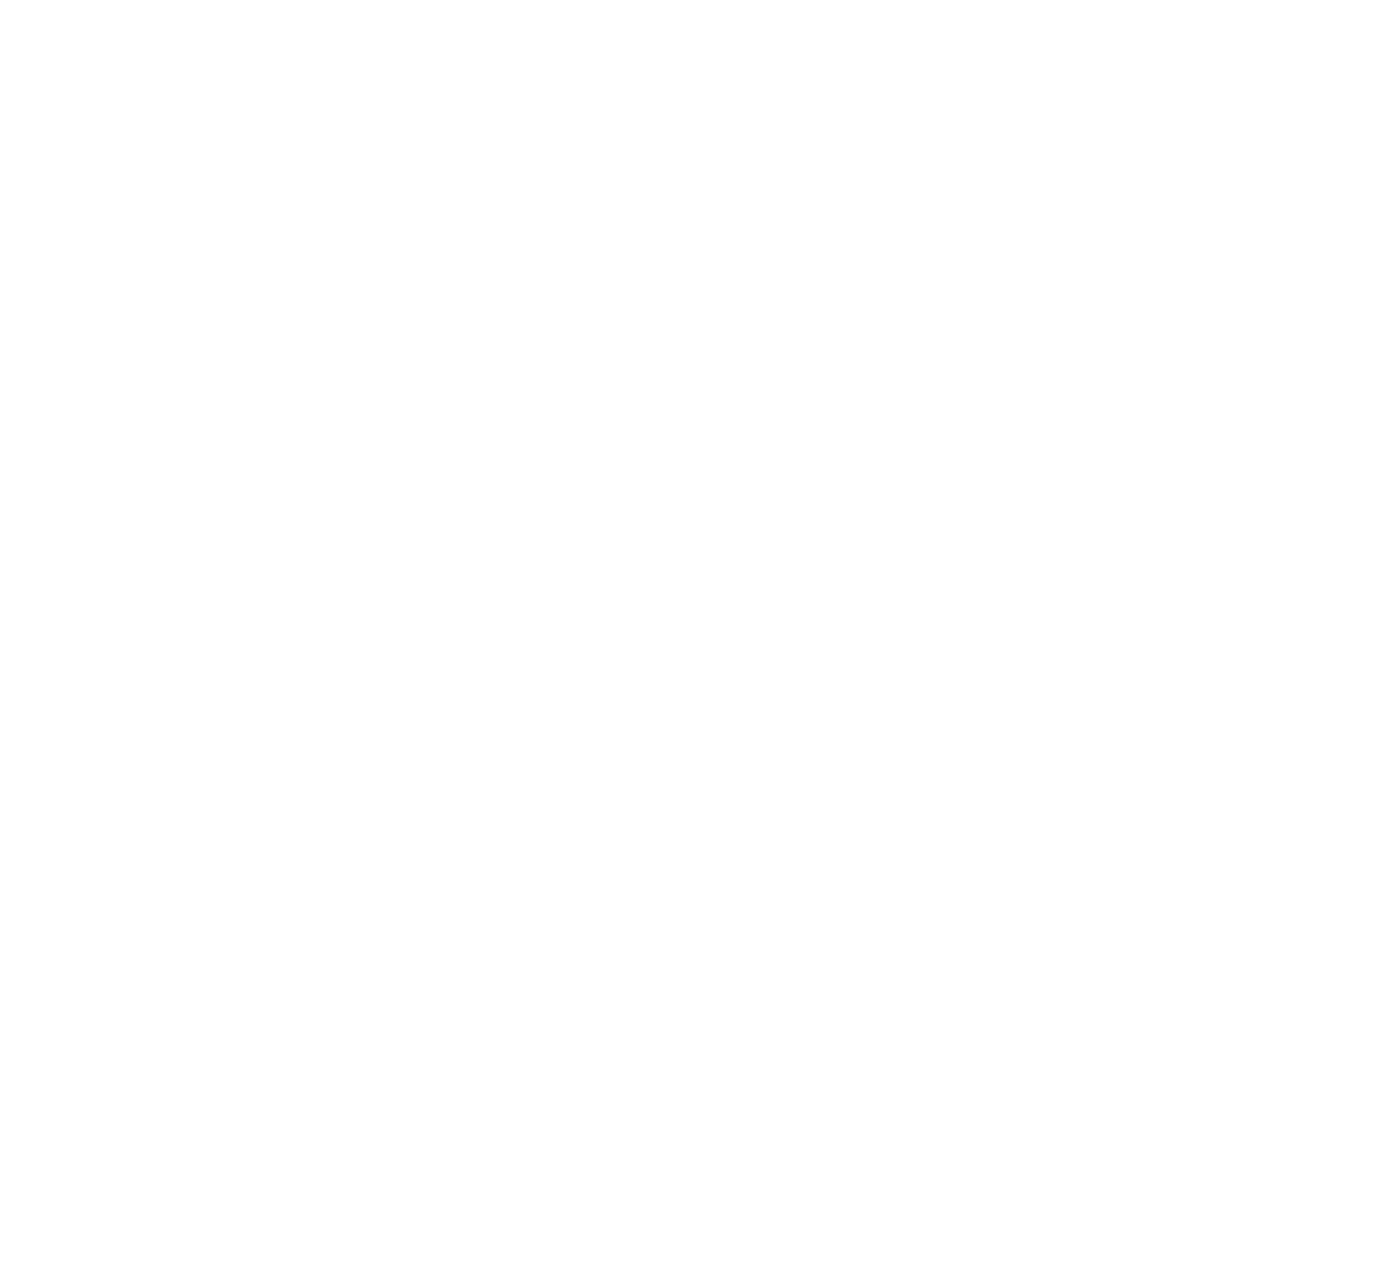 Emily Gallagher